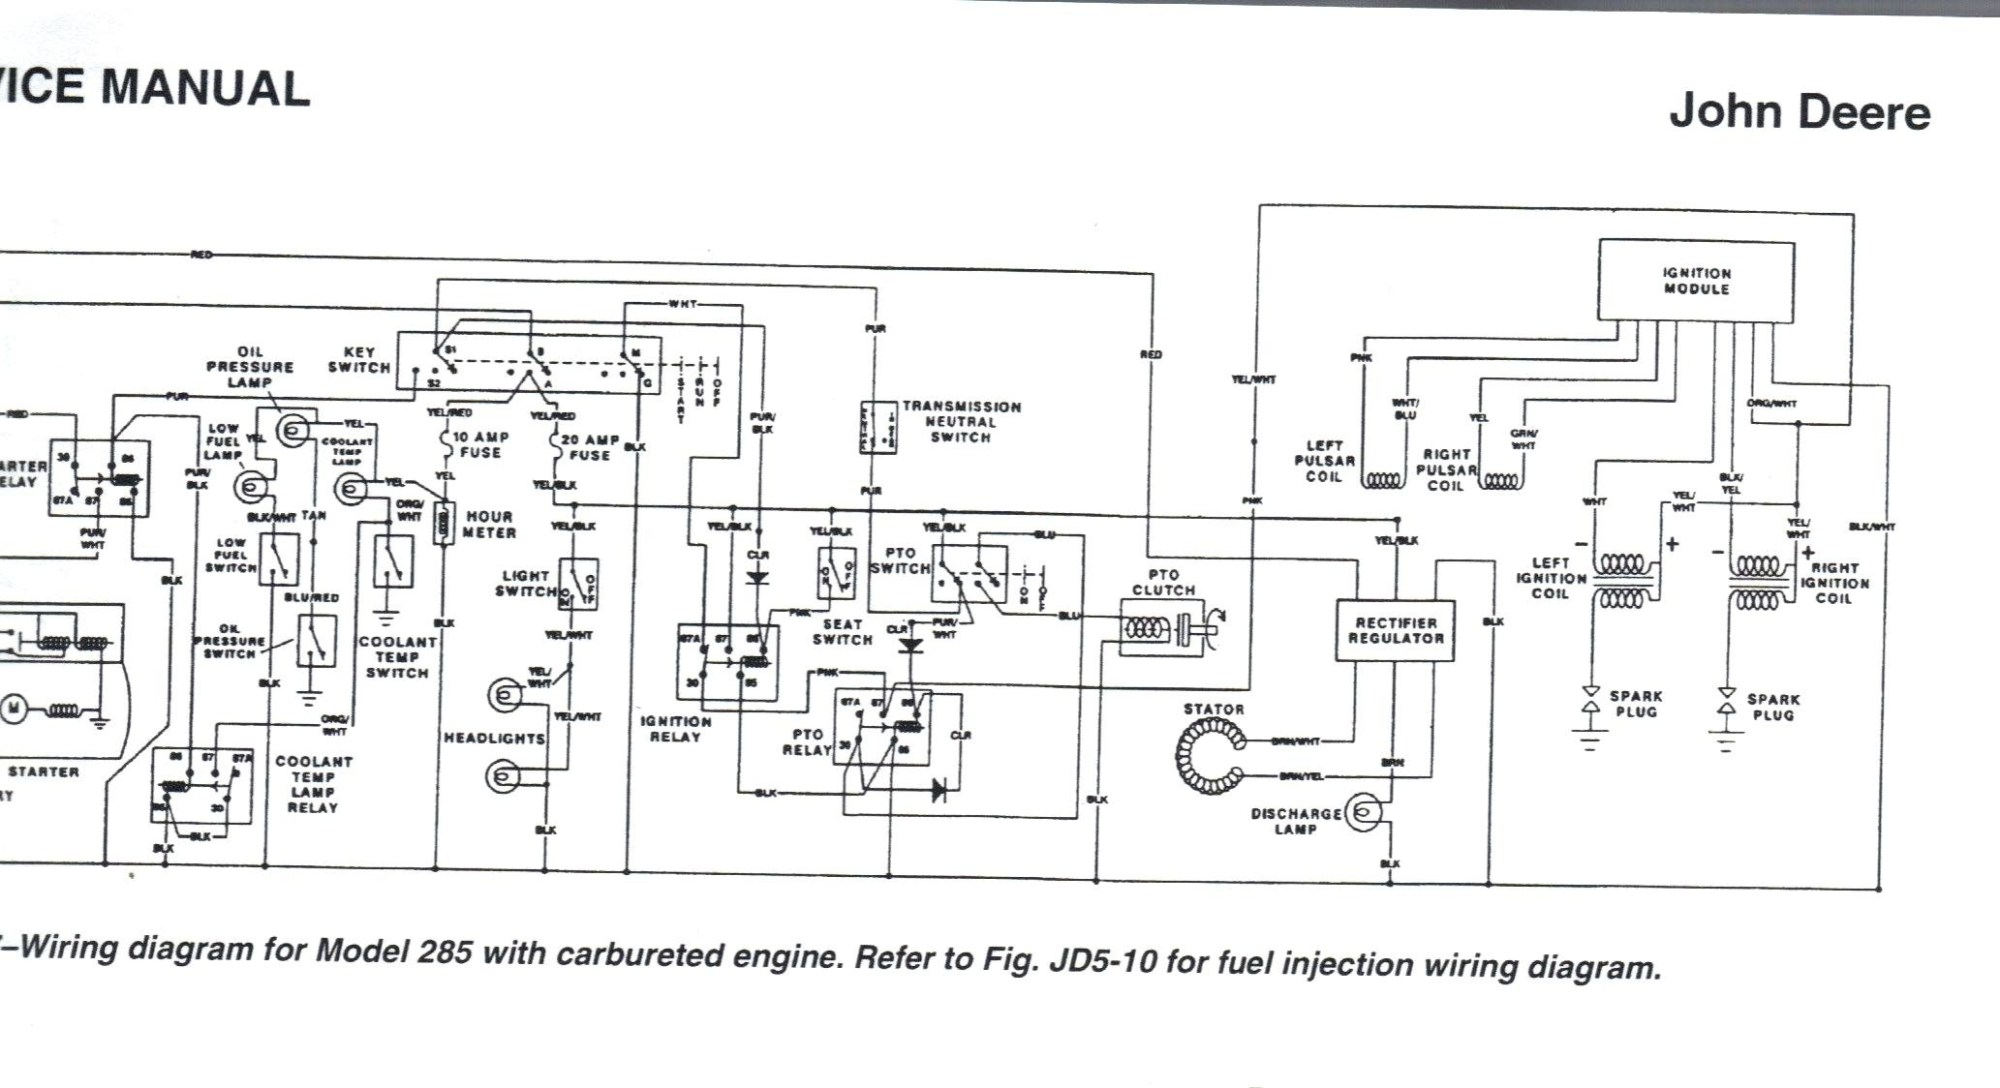 hight resolution of john deere la105 engine diagram john deere 400 wiring diagram canopi me and hbphelp of john